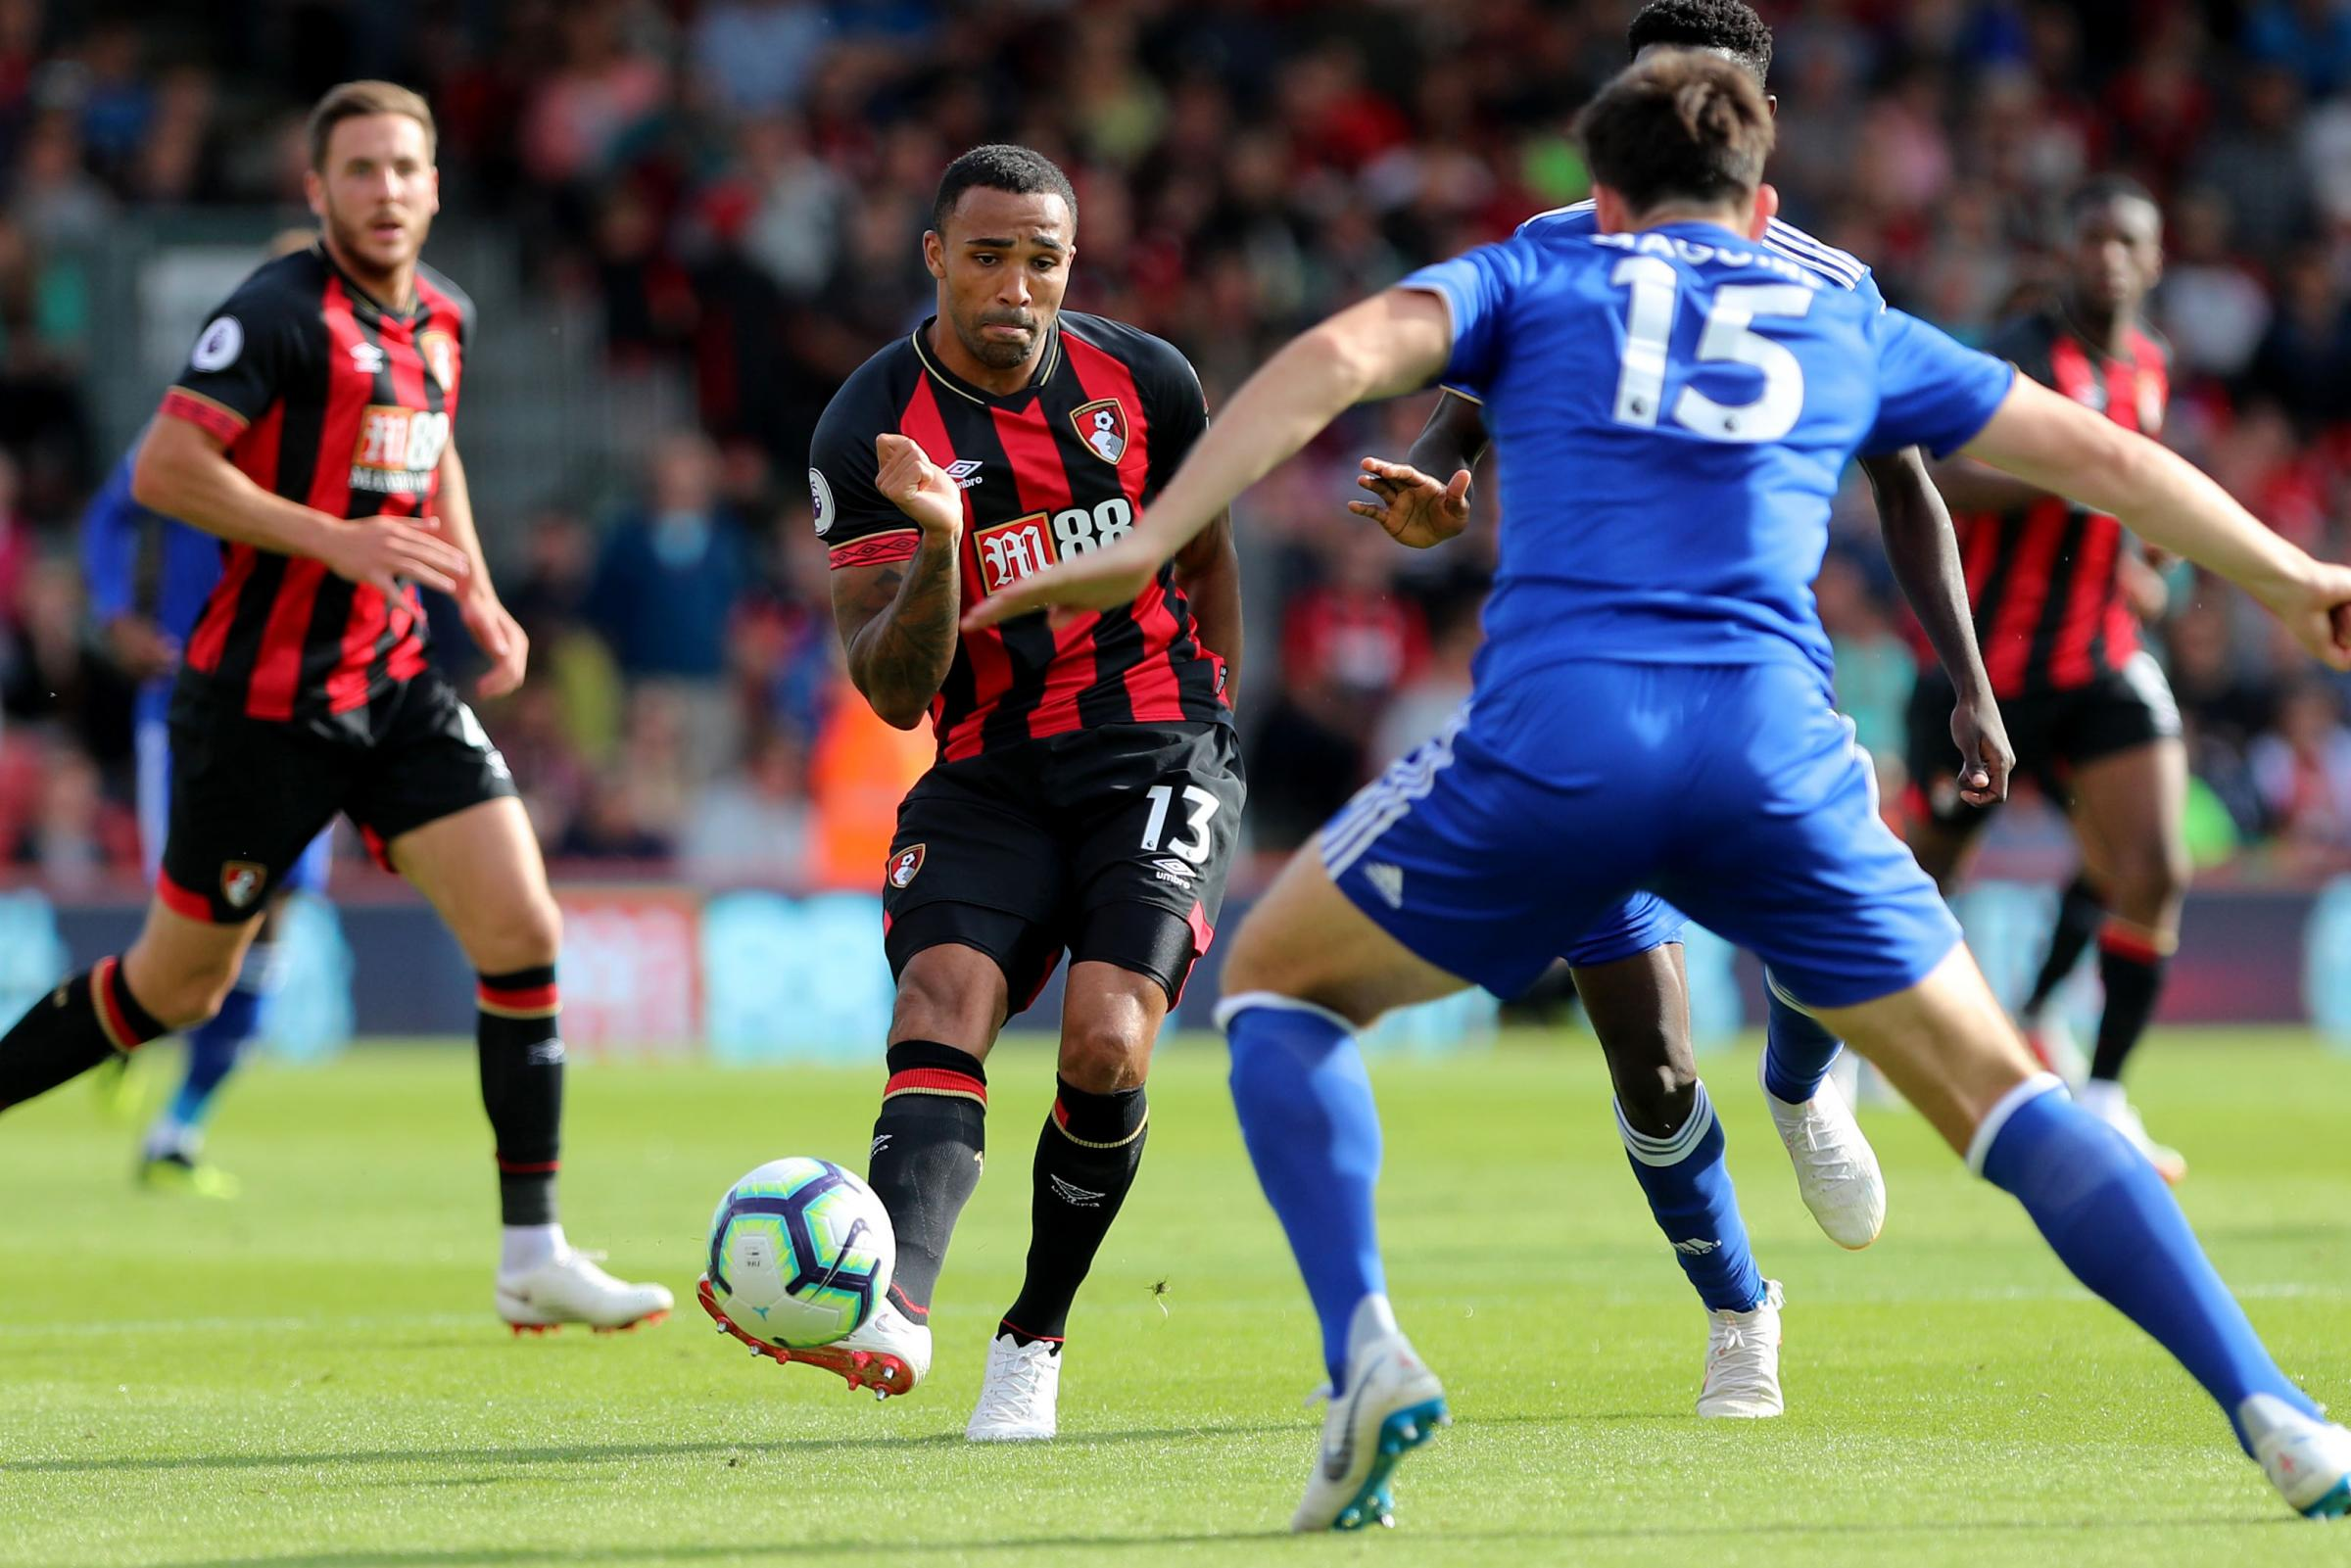 Cherries stars being acknowledged and recognised by England, says striker Wilson